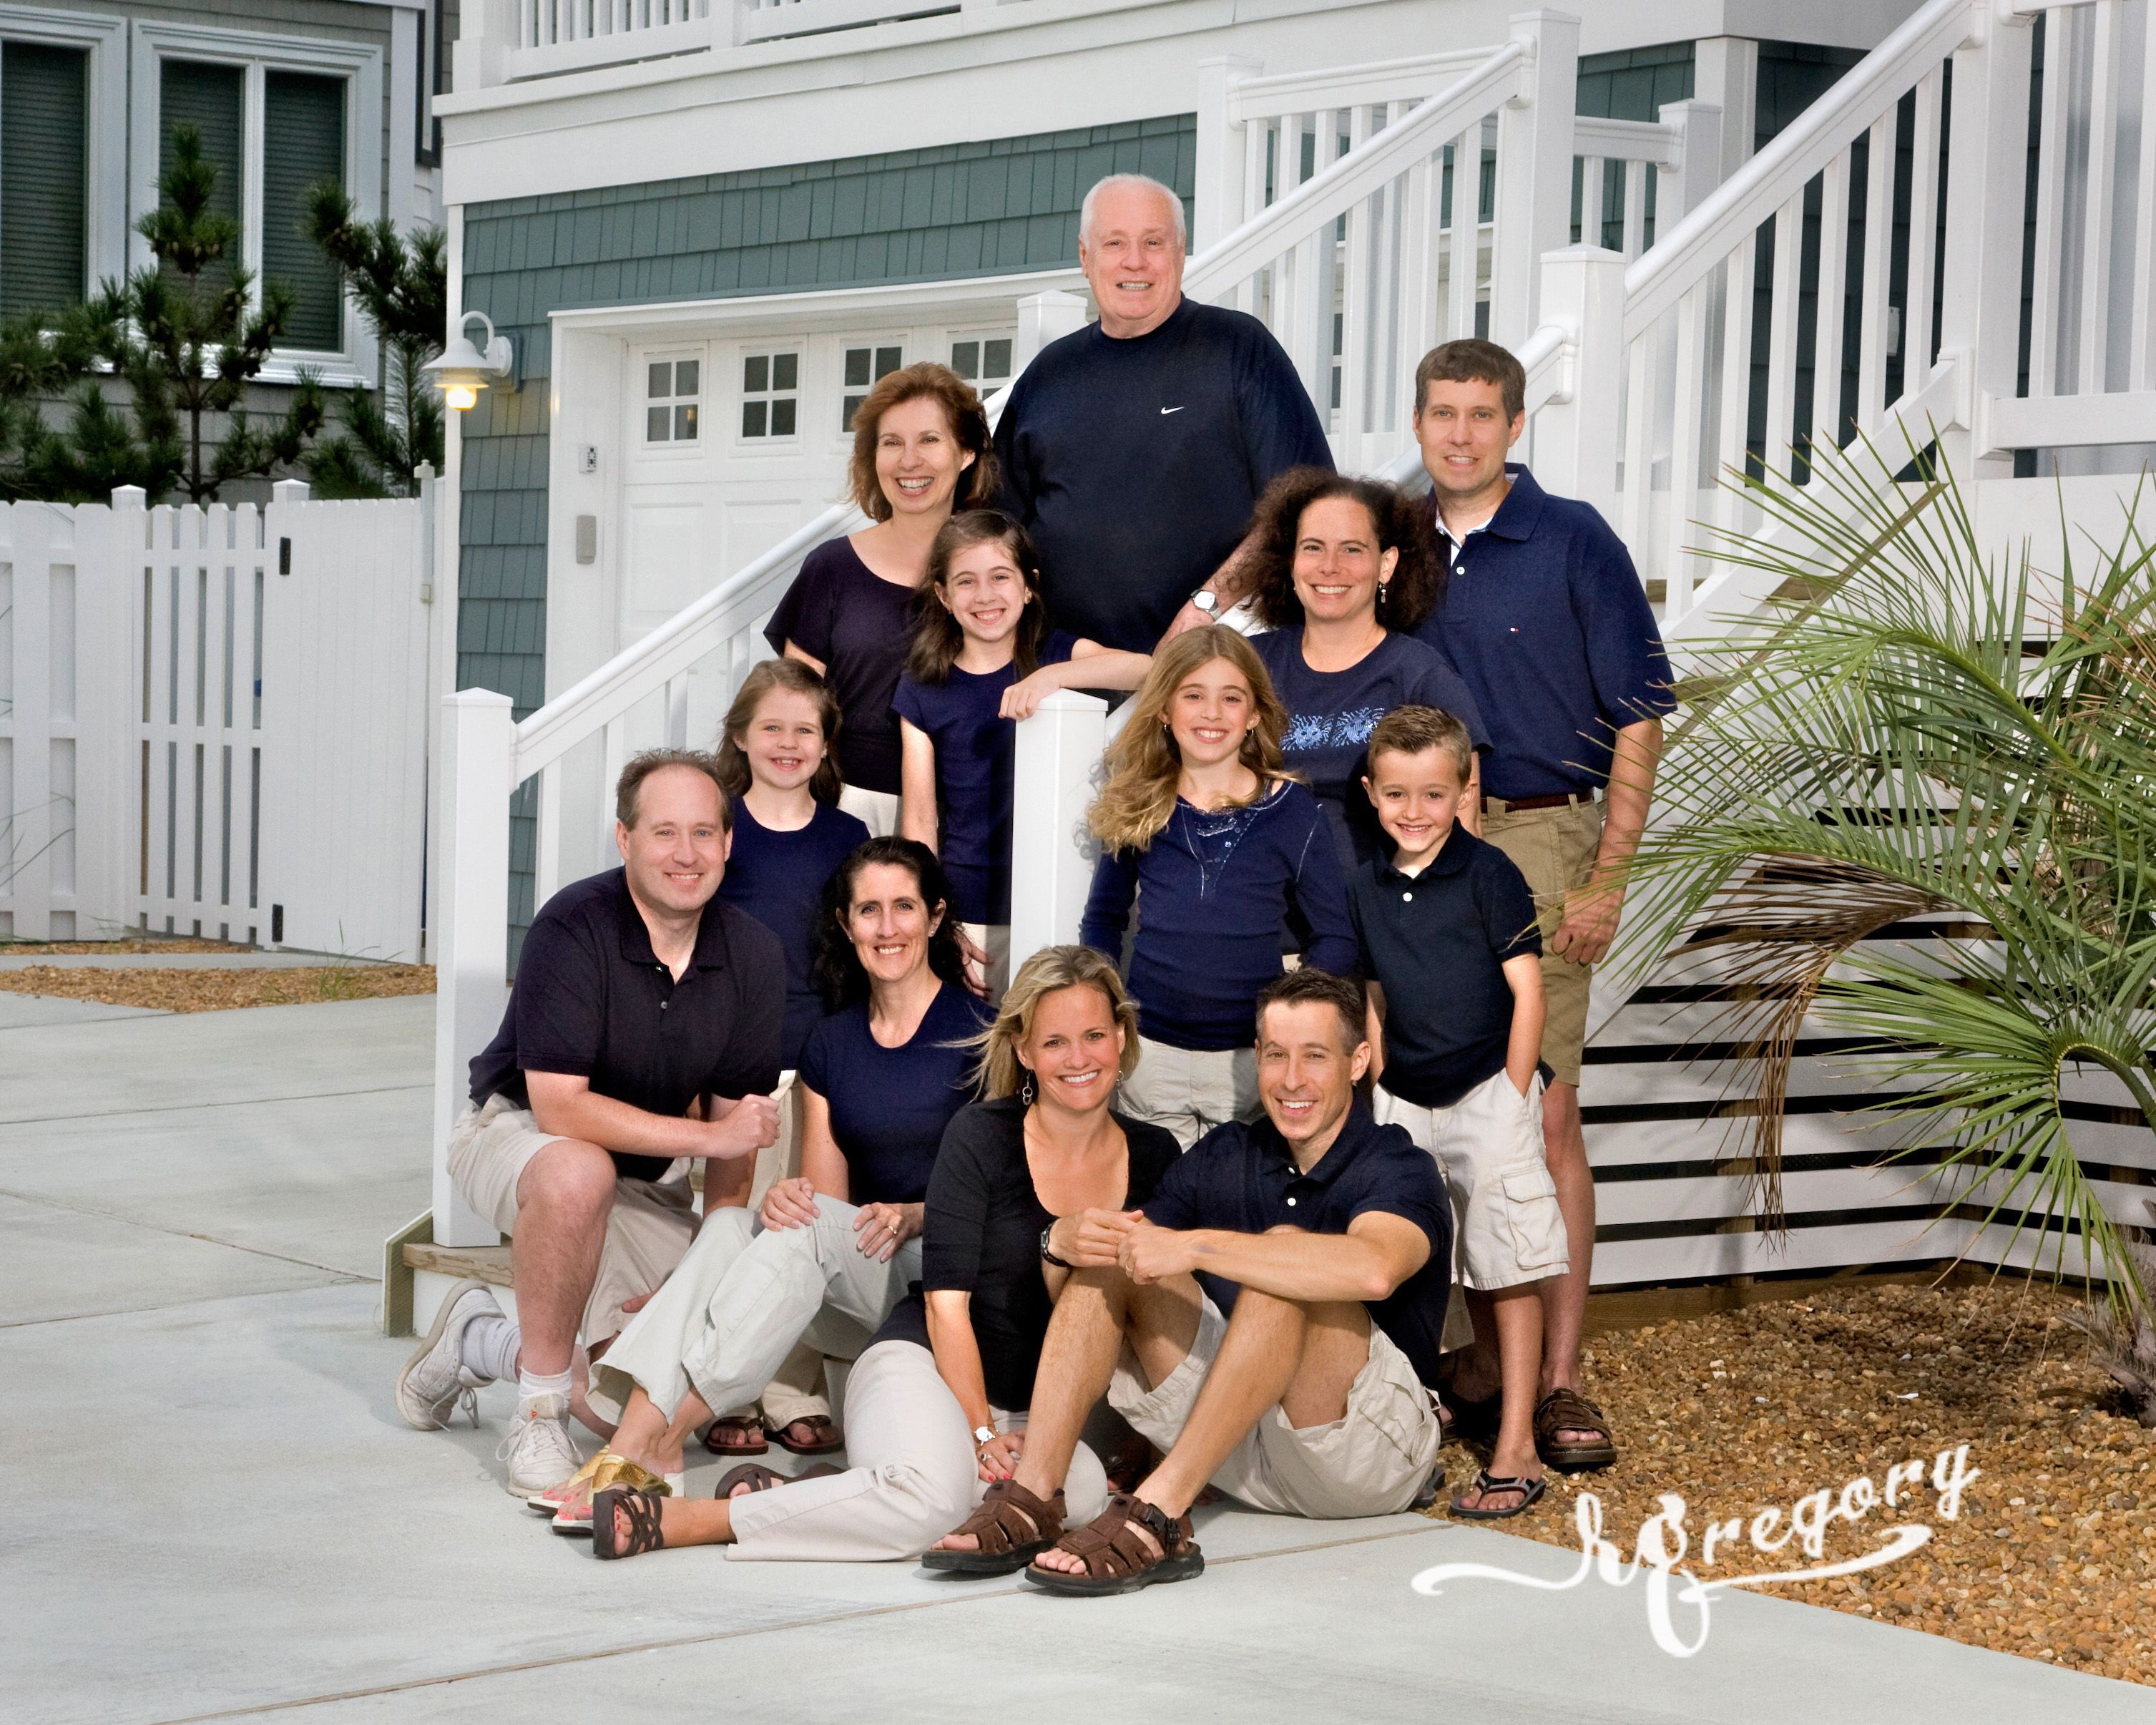 Family Portrait at beach house vacation